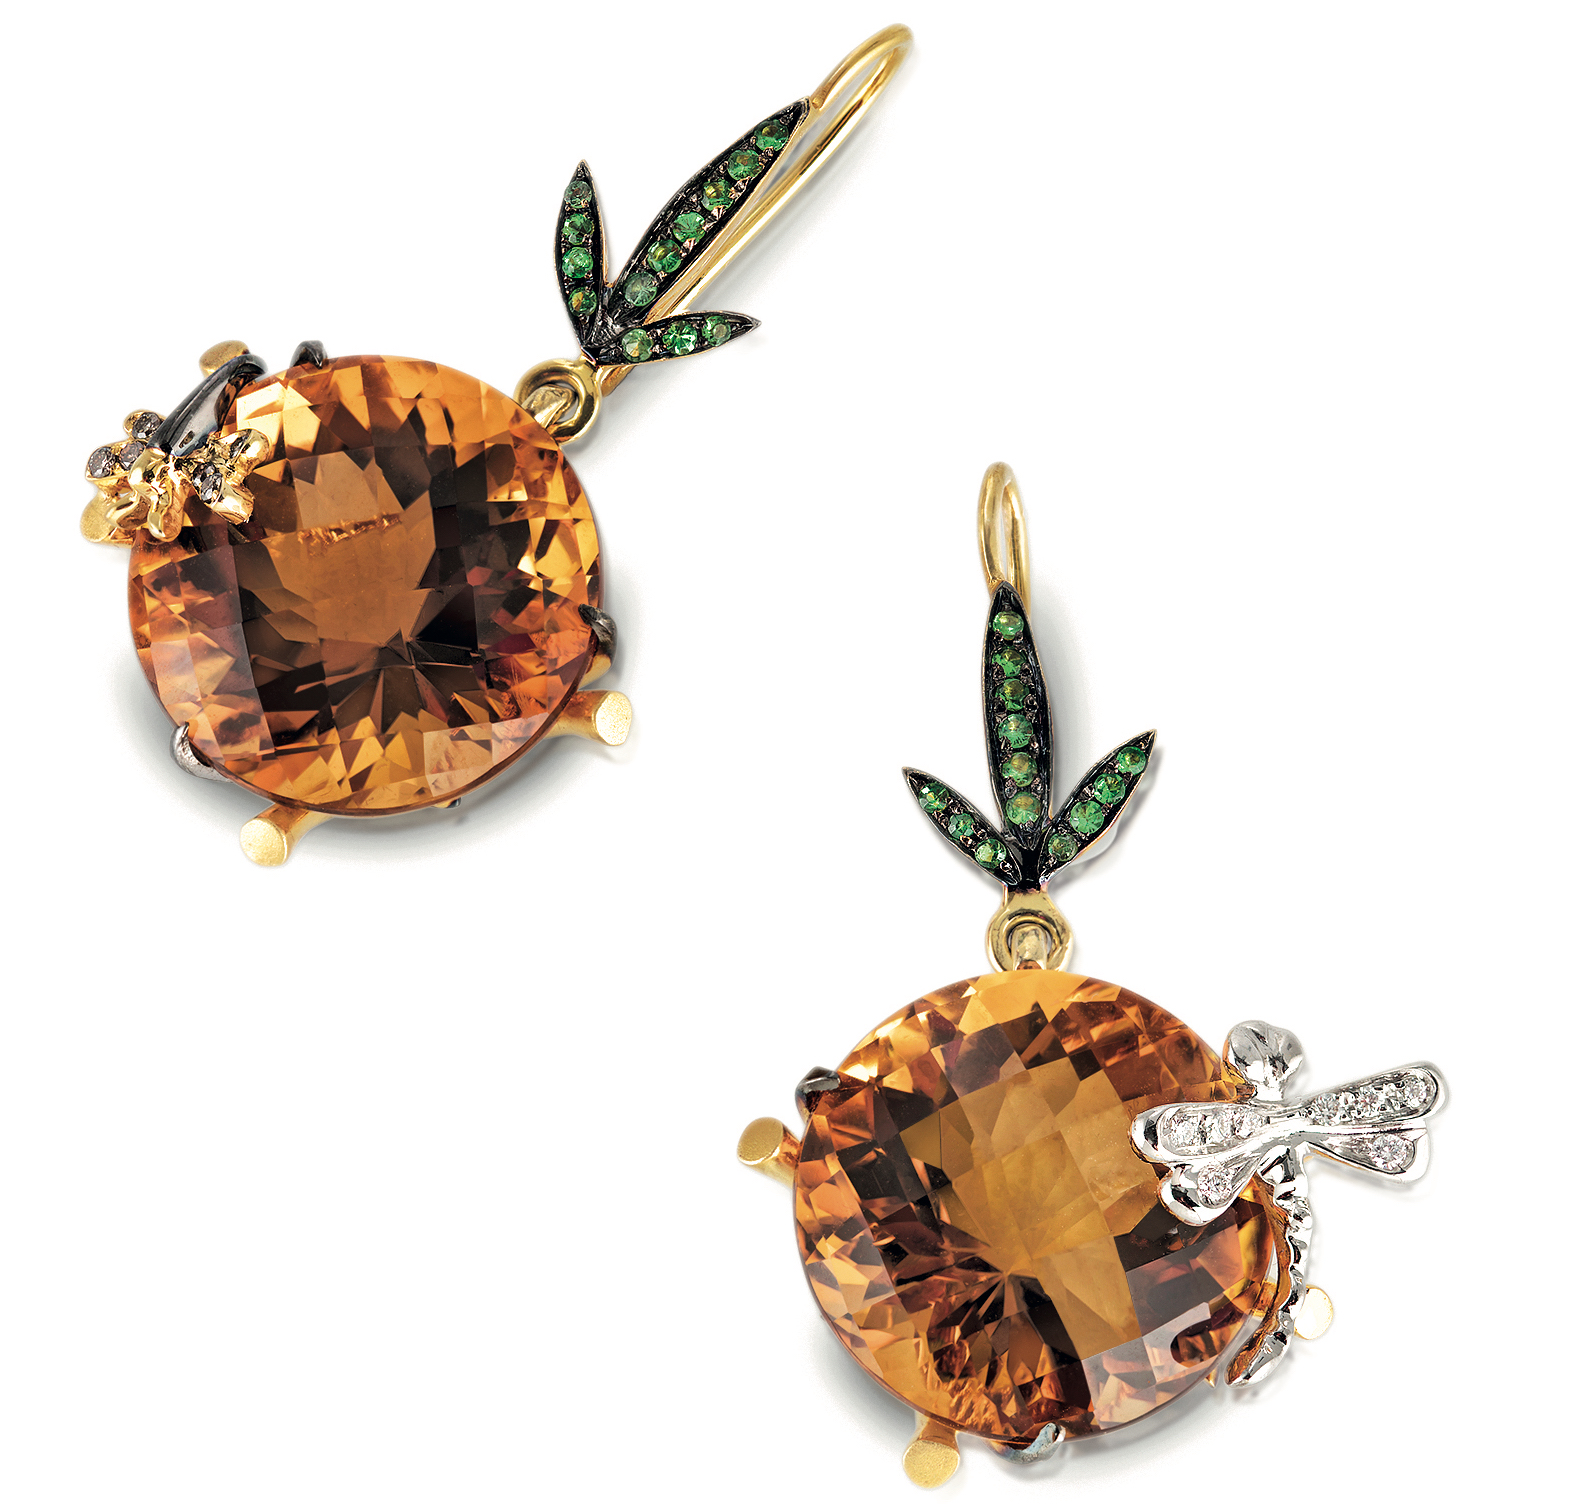 Roberto Coin Garden collection earrings